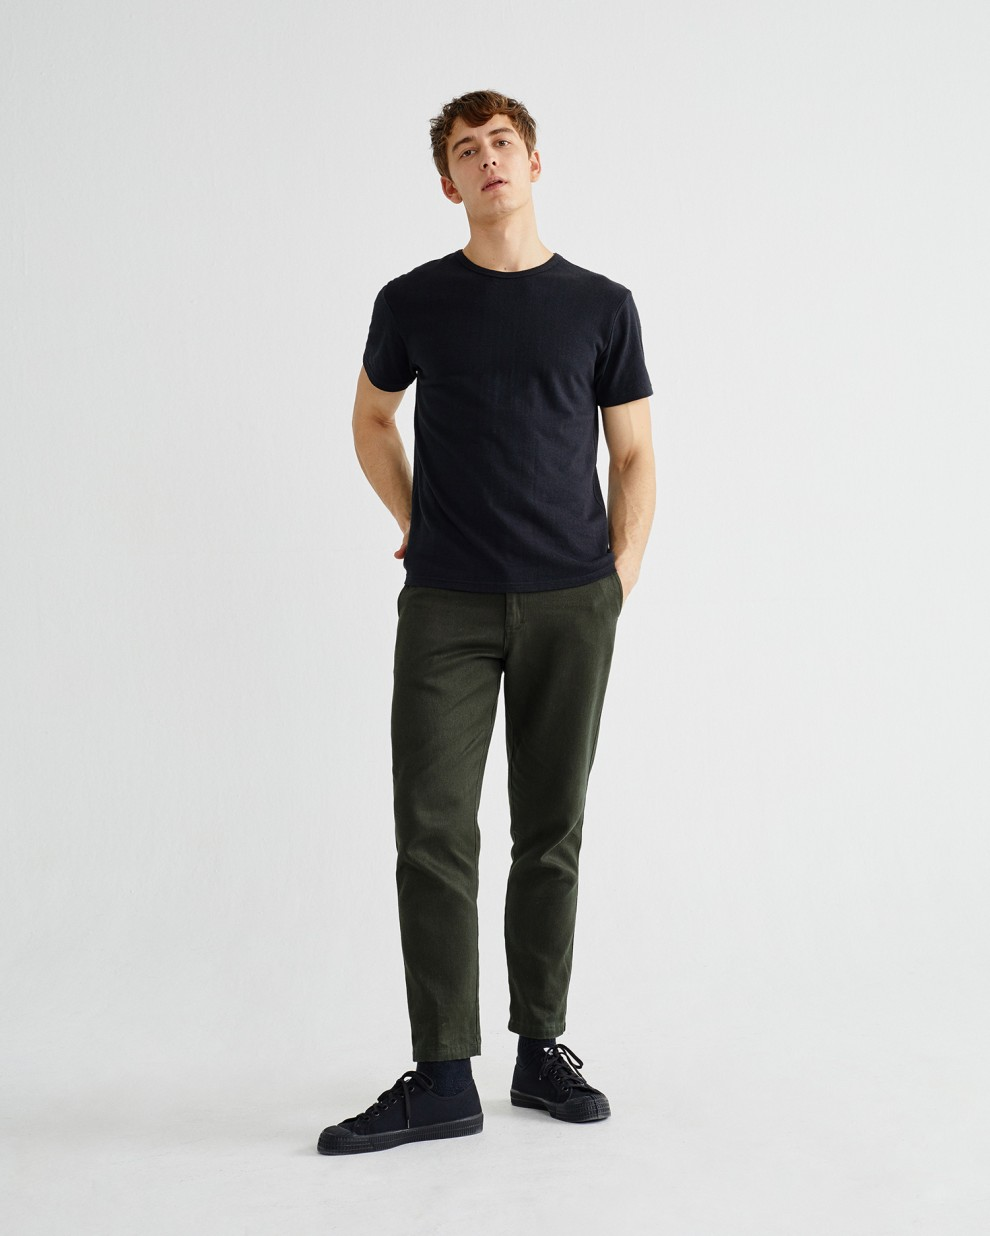 GREEN HEMP MARCELINO PANTS